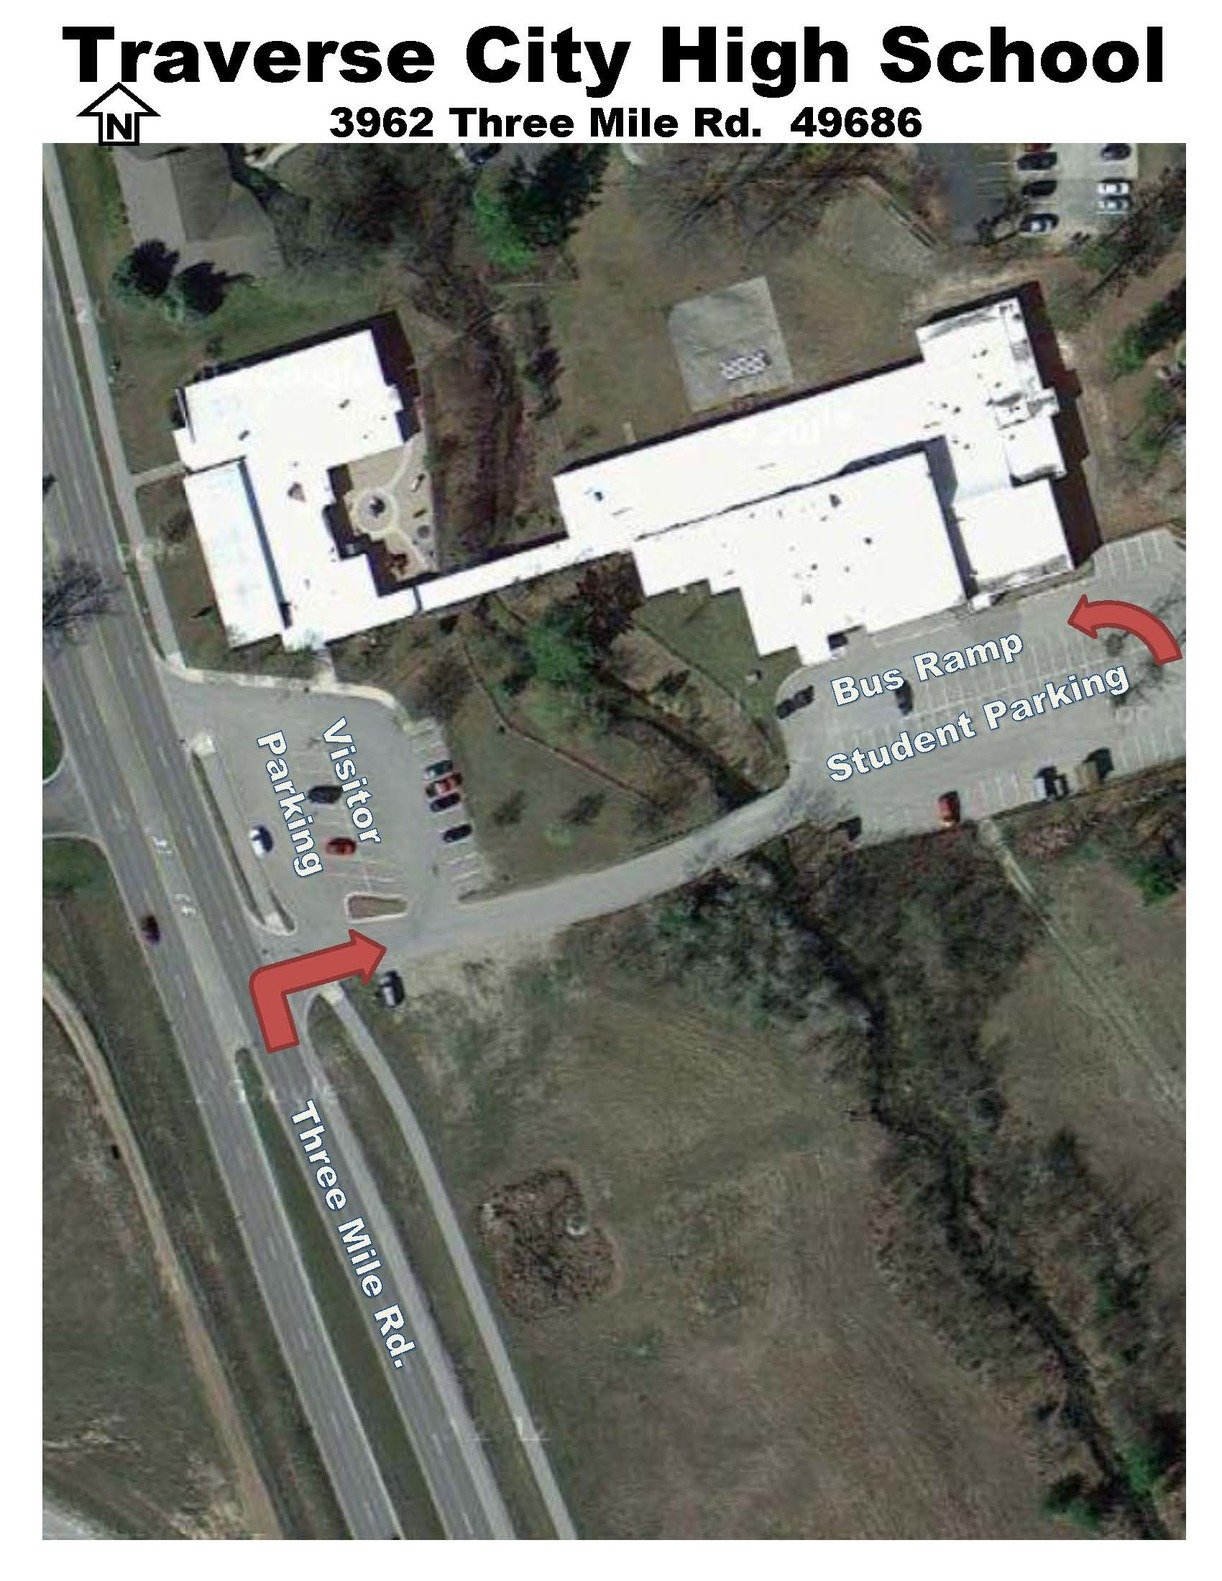 Traverse City High School Bus Ramp Map